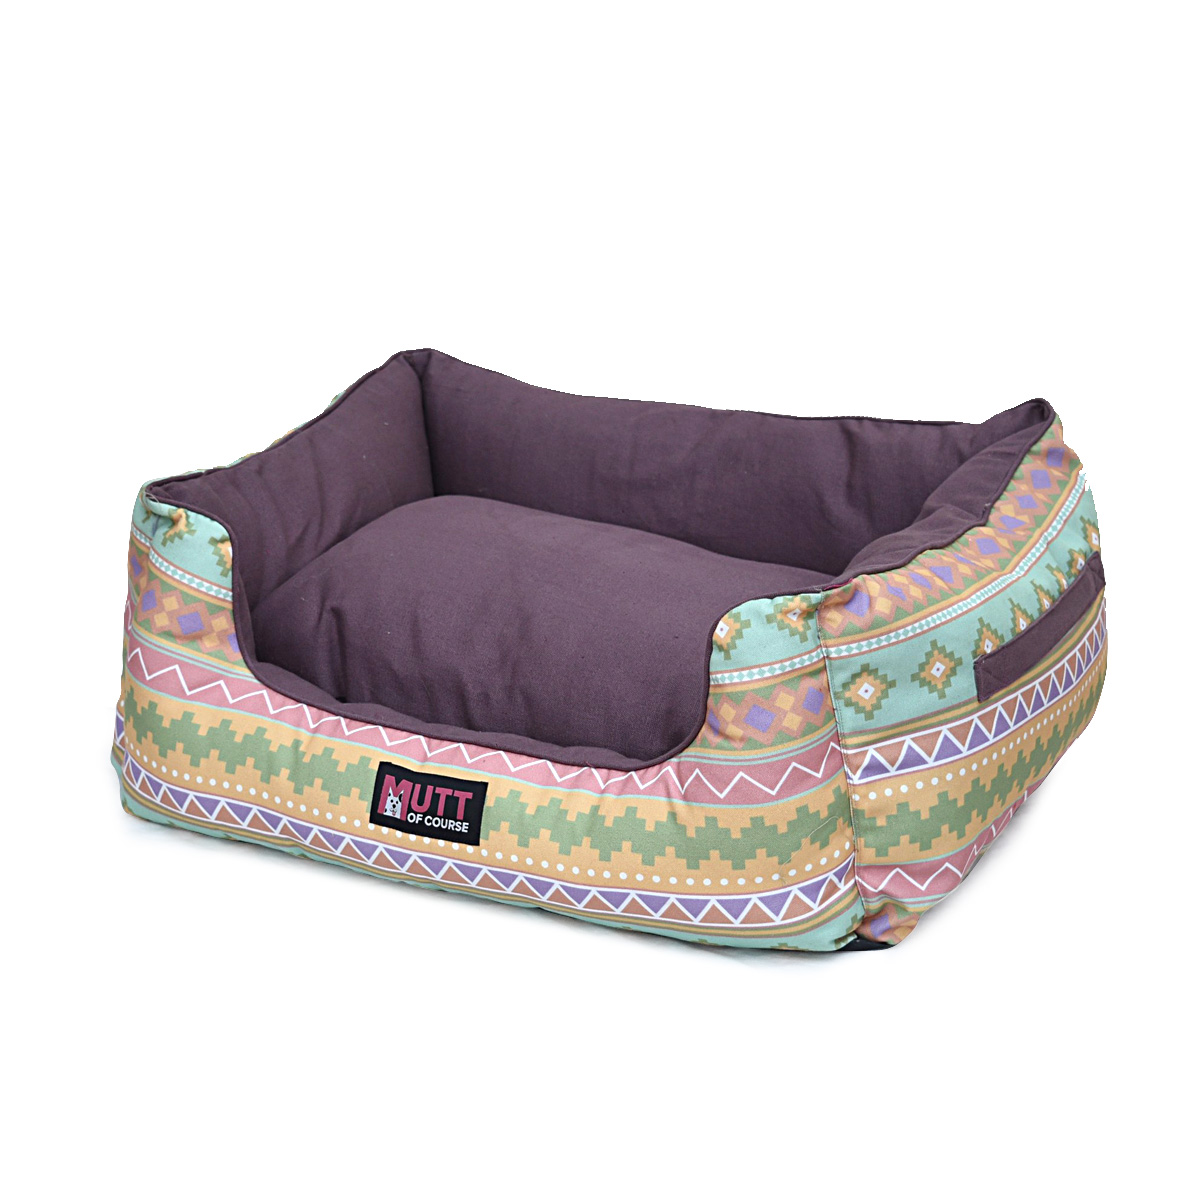 Mutt Of Course Lounger Bed For Dogs - Aztec Printe  - Medium